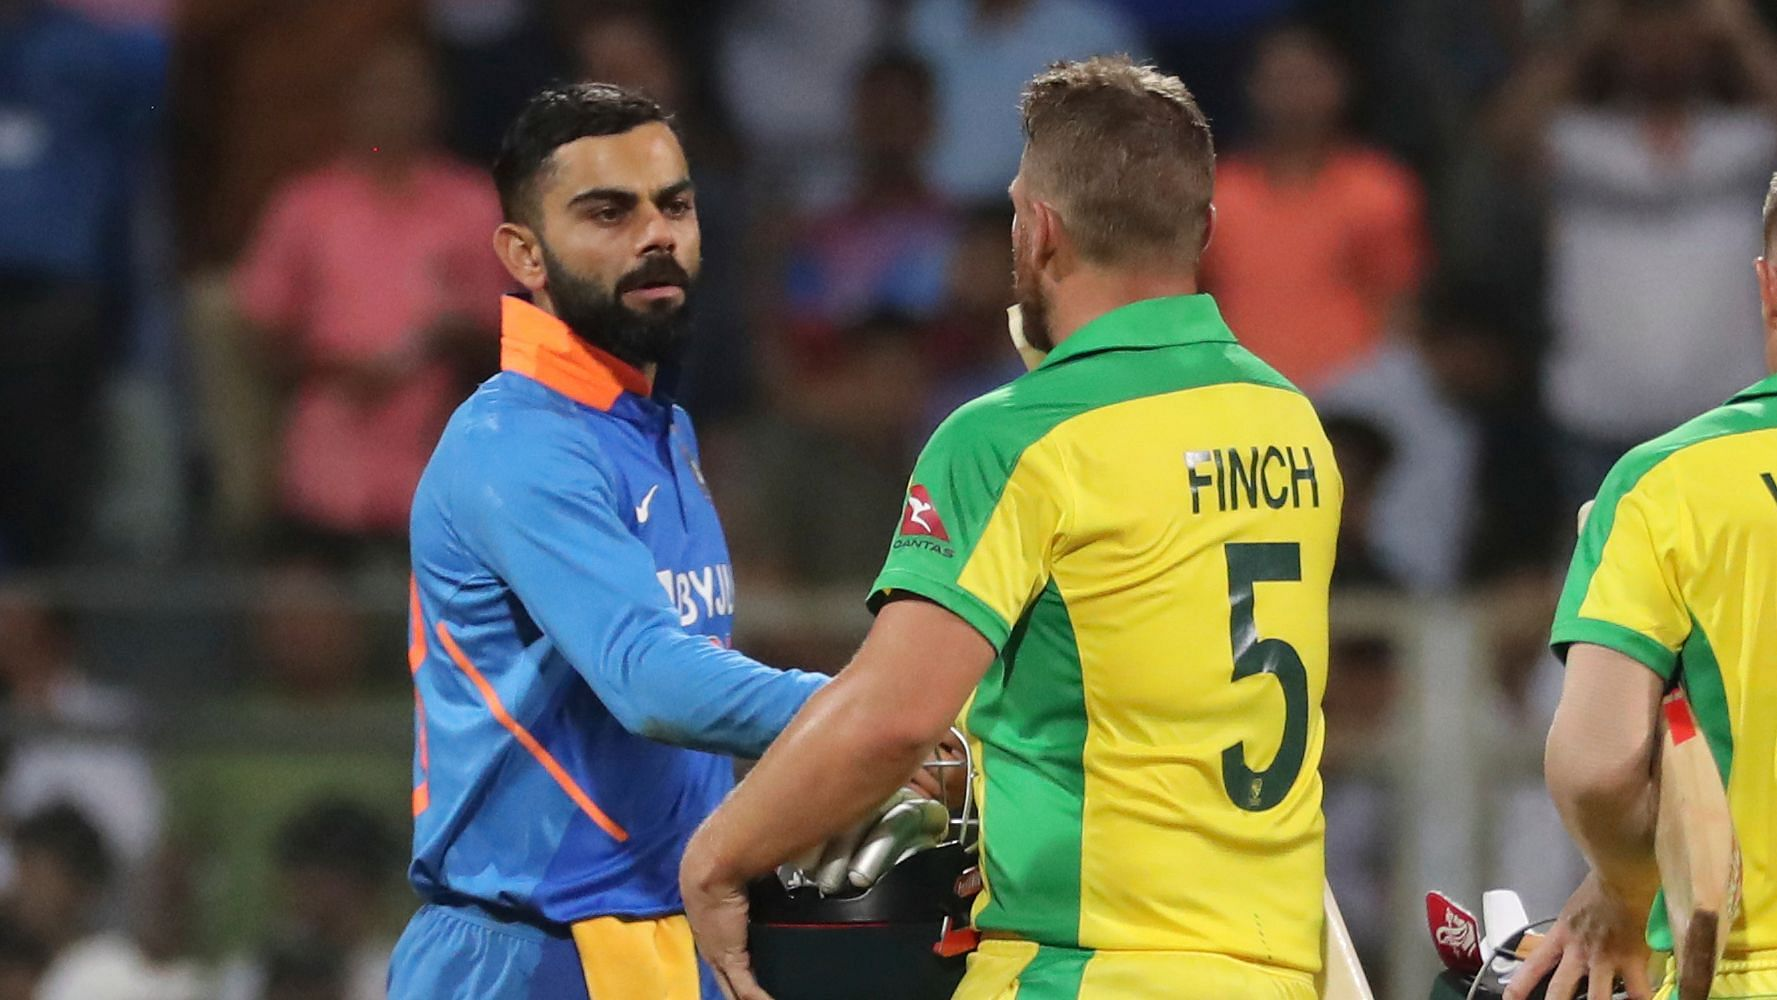 ODI Series on the Line as Virat & Finch Face-Off at Their IPL Home